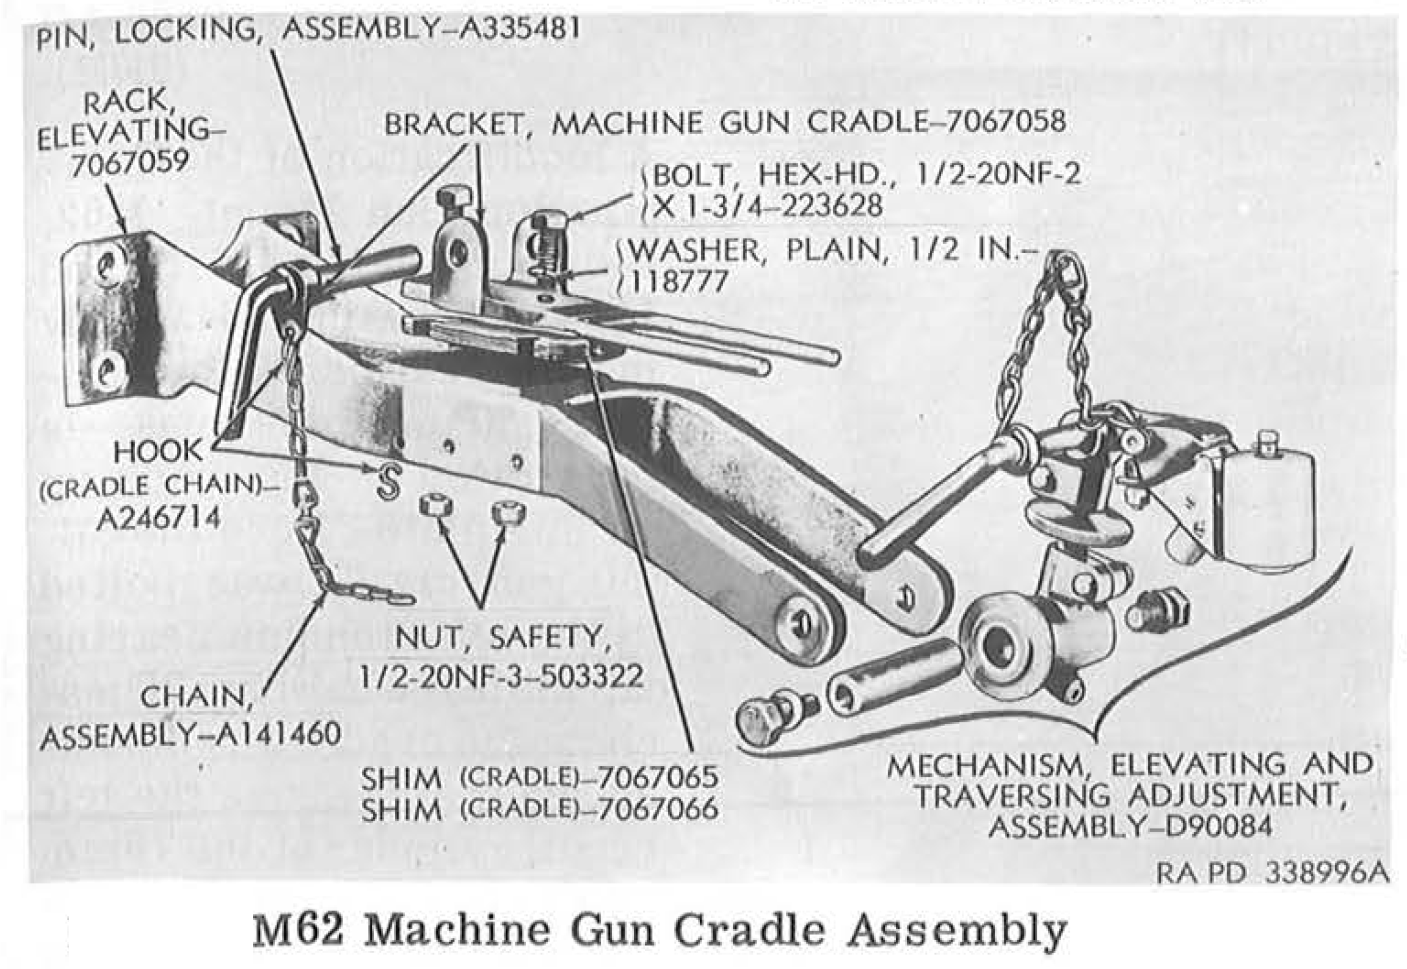 M4 Sherman Tank Small Arms Page: The Machineguns and their mounts